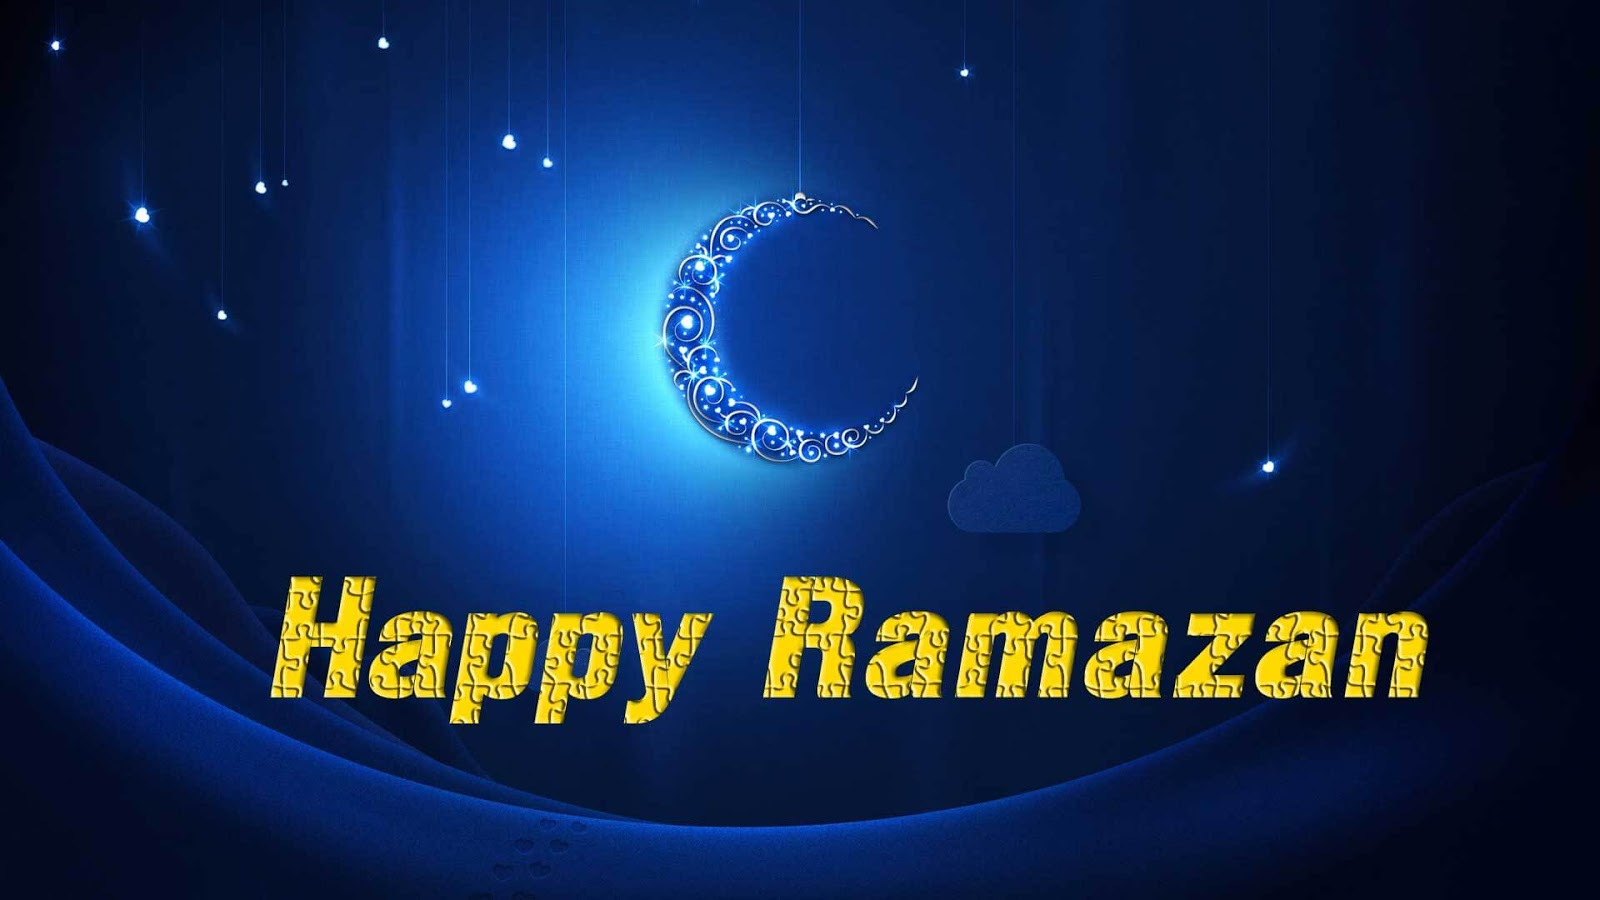 2017 ramazan greetings wallpapers images pictures download m4hsunfo Gallery